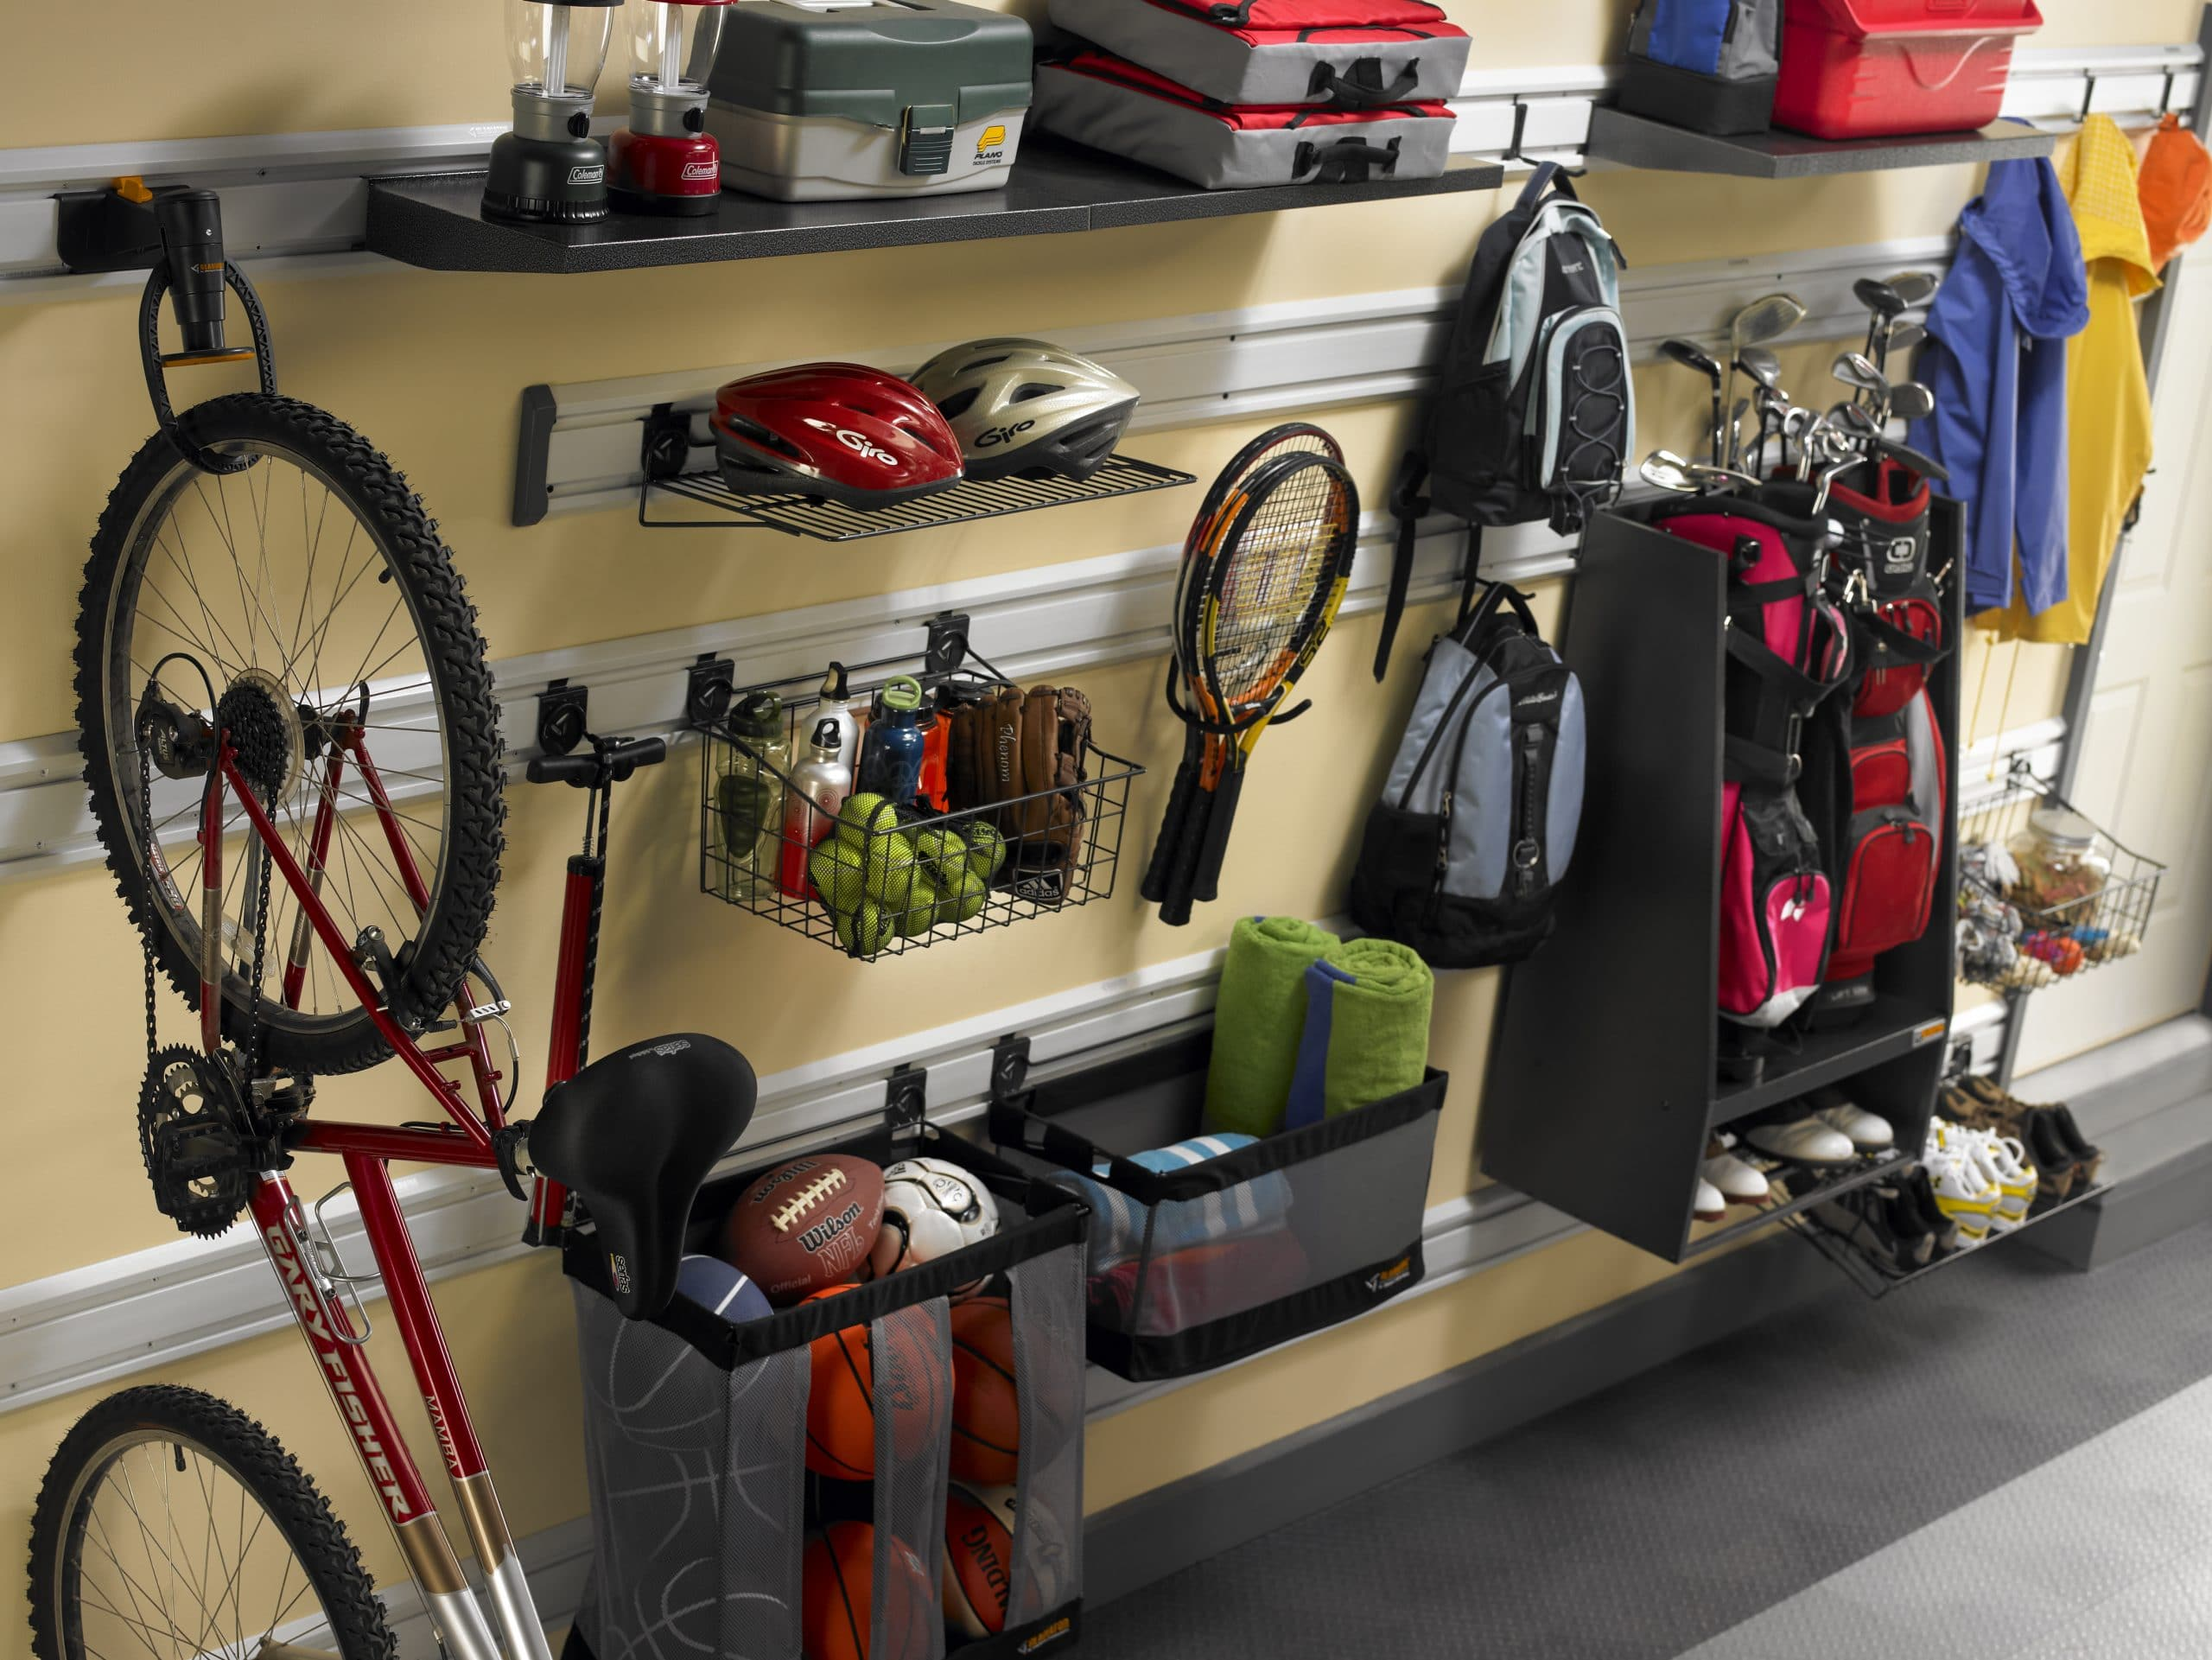 Garage shelving ideas hanging. modern garage storage ideas using ...